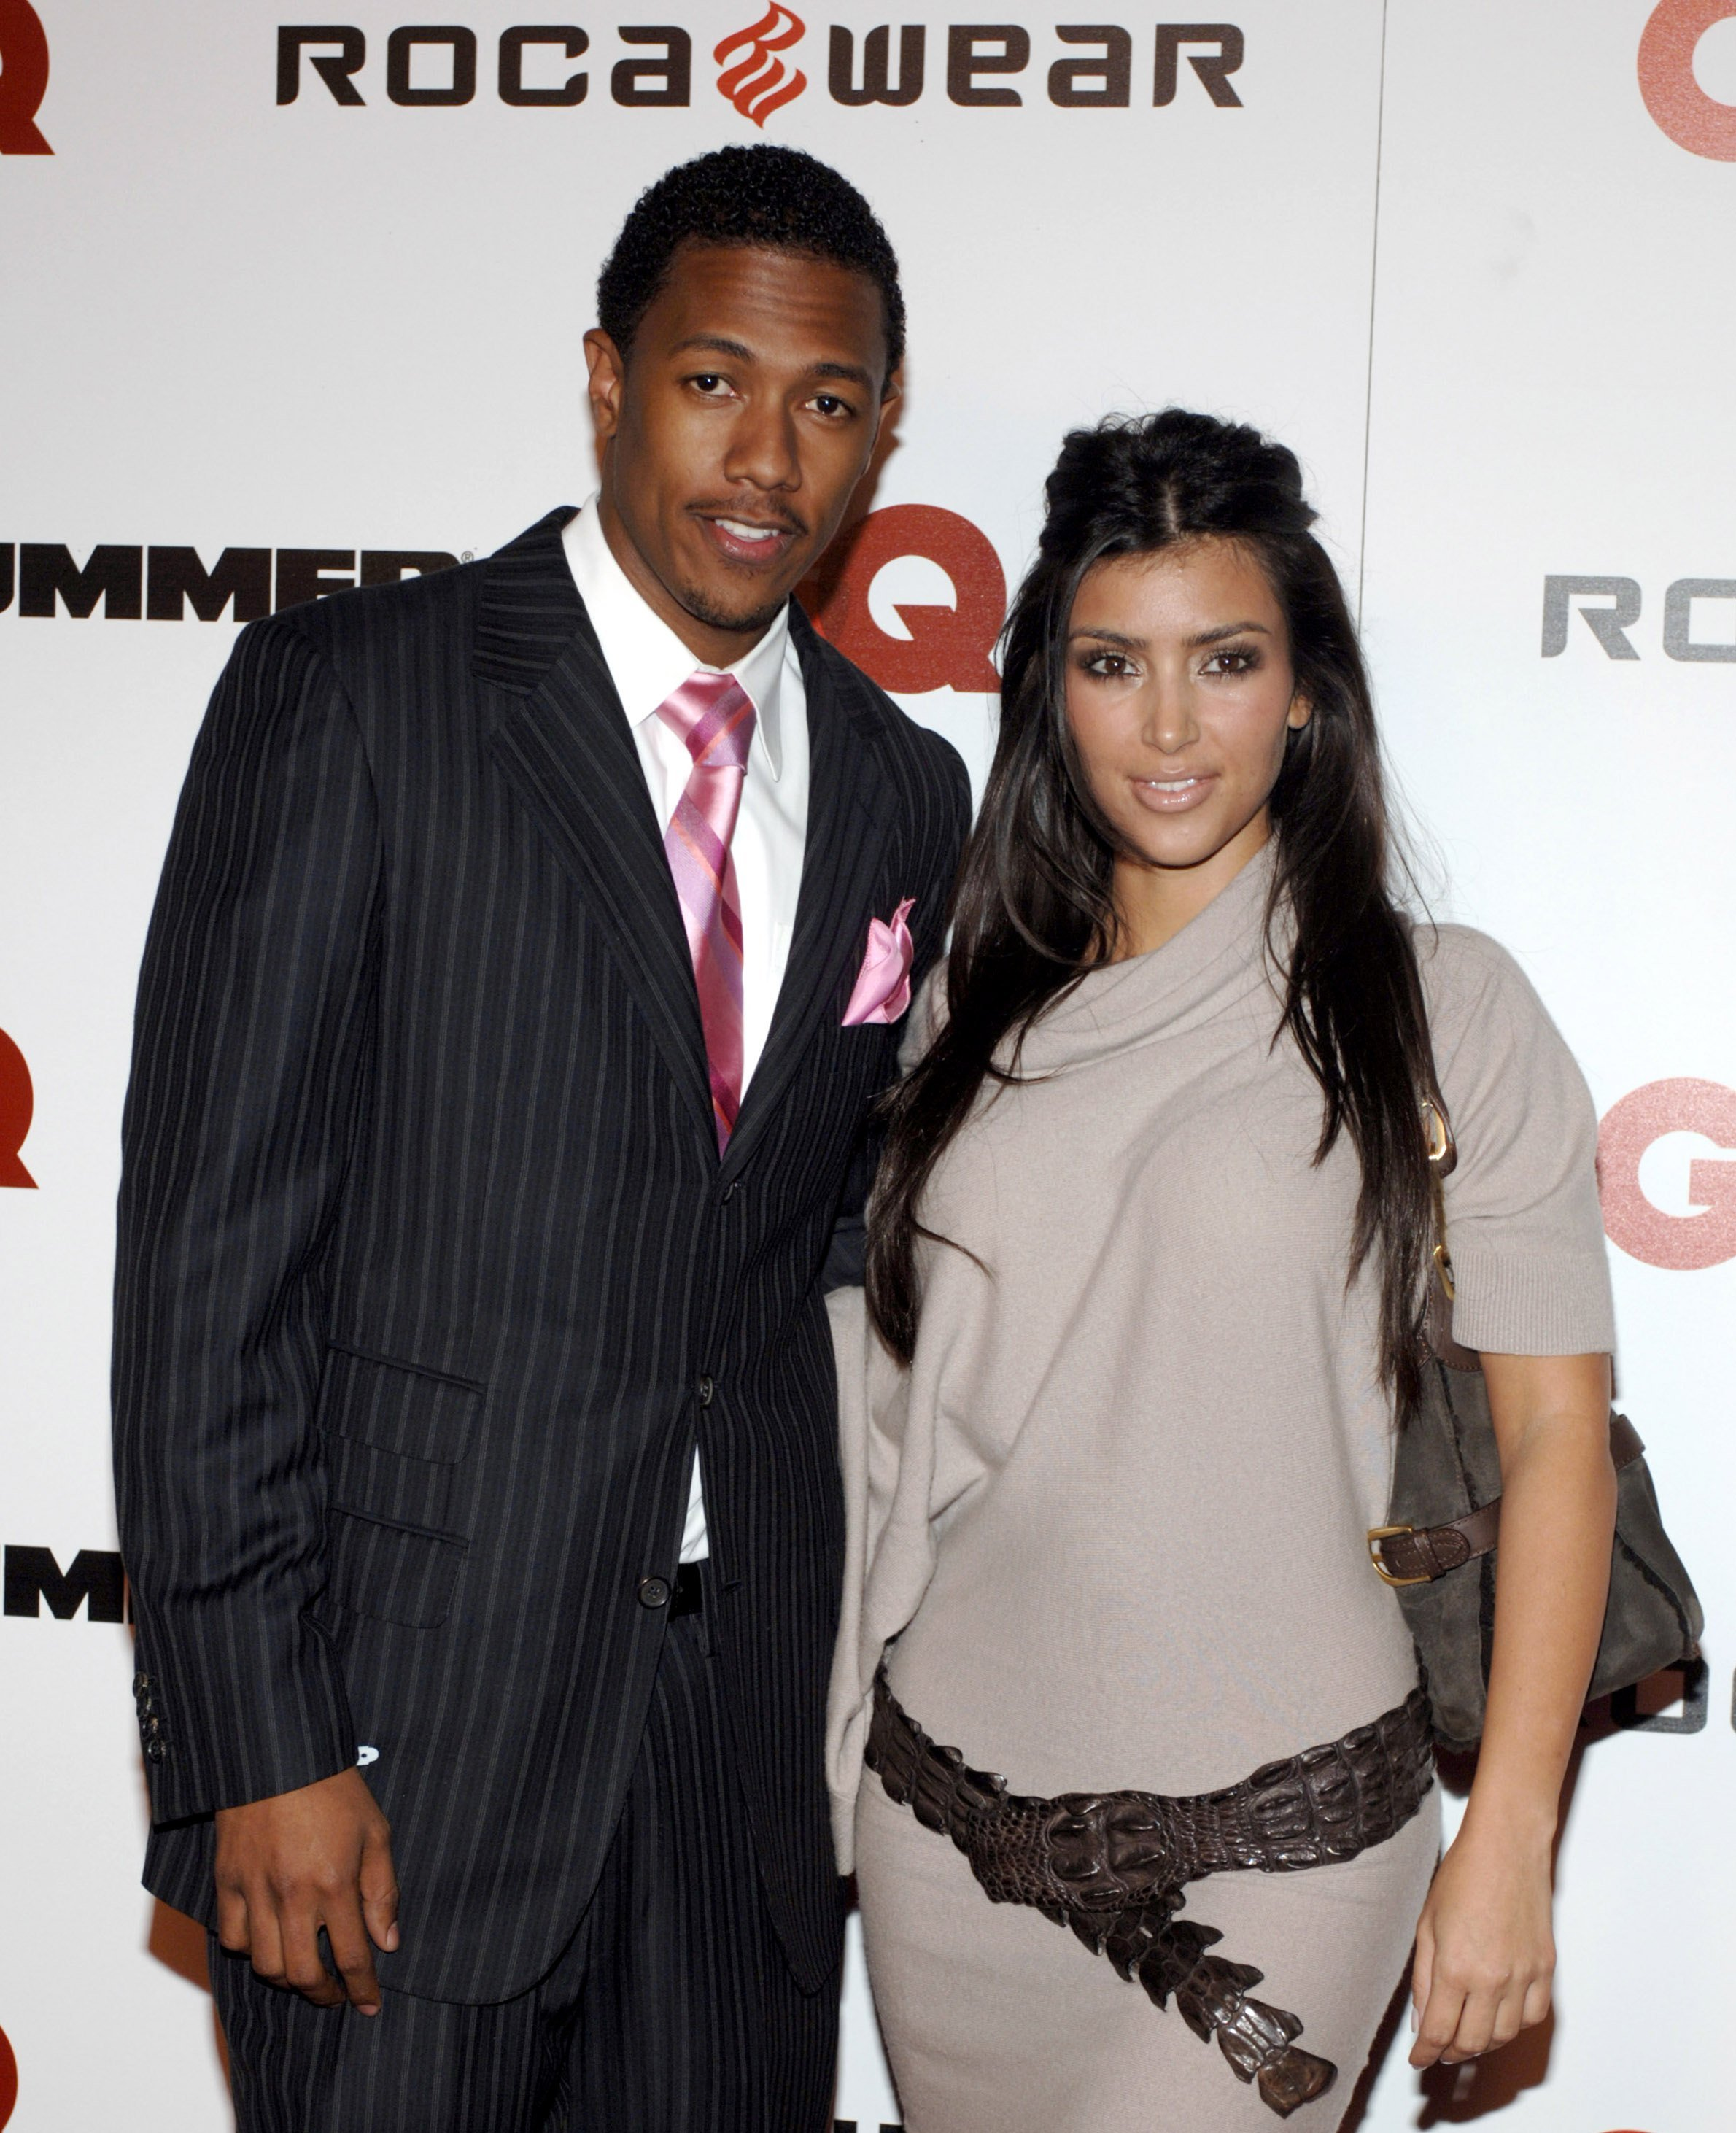 Image Credits: Getty Images | Kim Kardashian and Nick Cannon dated in 2006